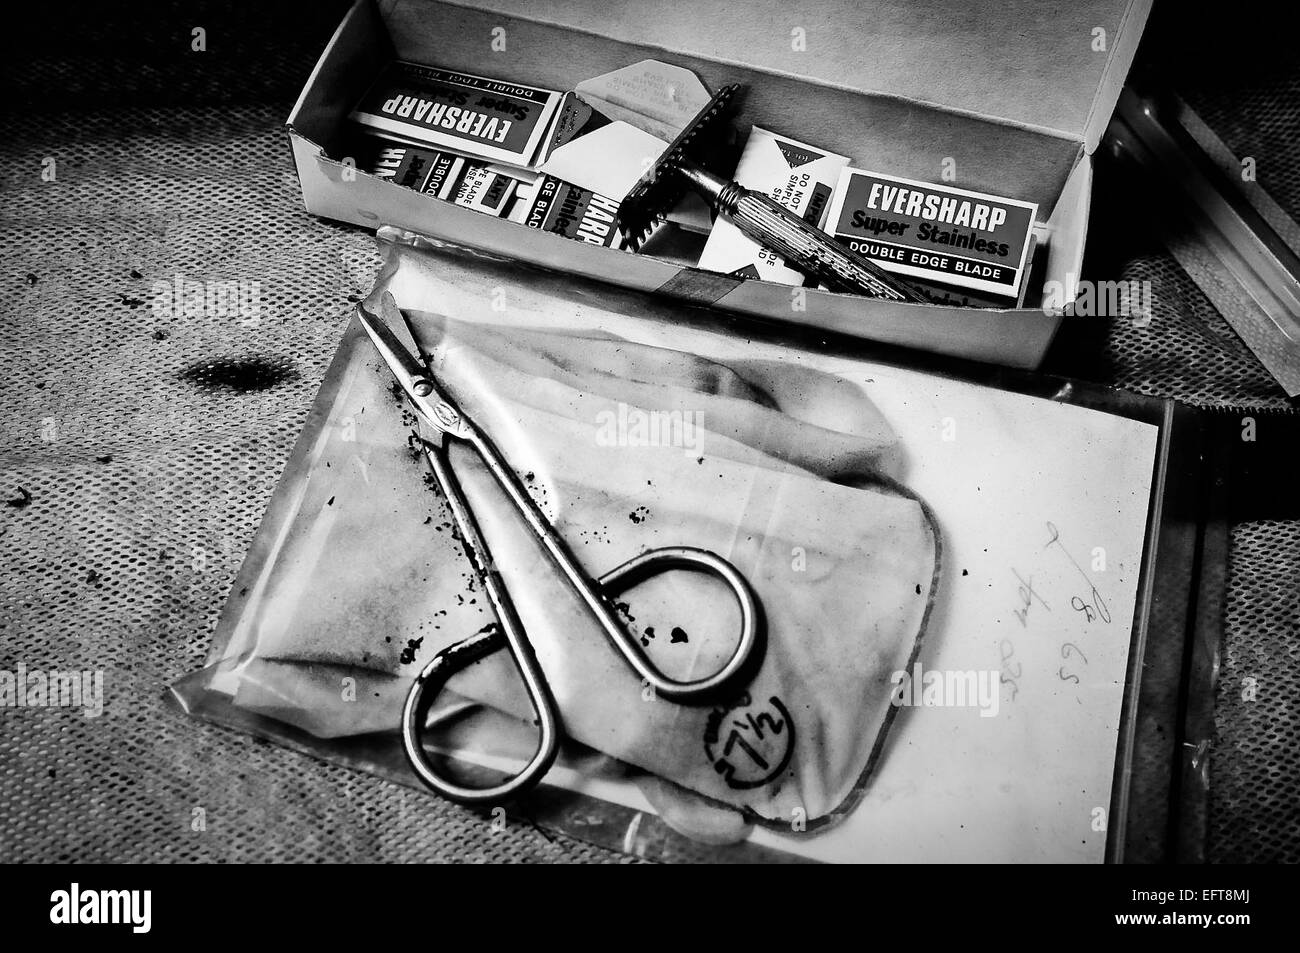 Scissors and razor blades for preparing the hair of bodies at a mortuary. - Stock Image